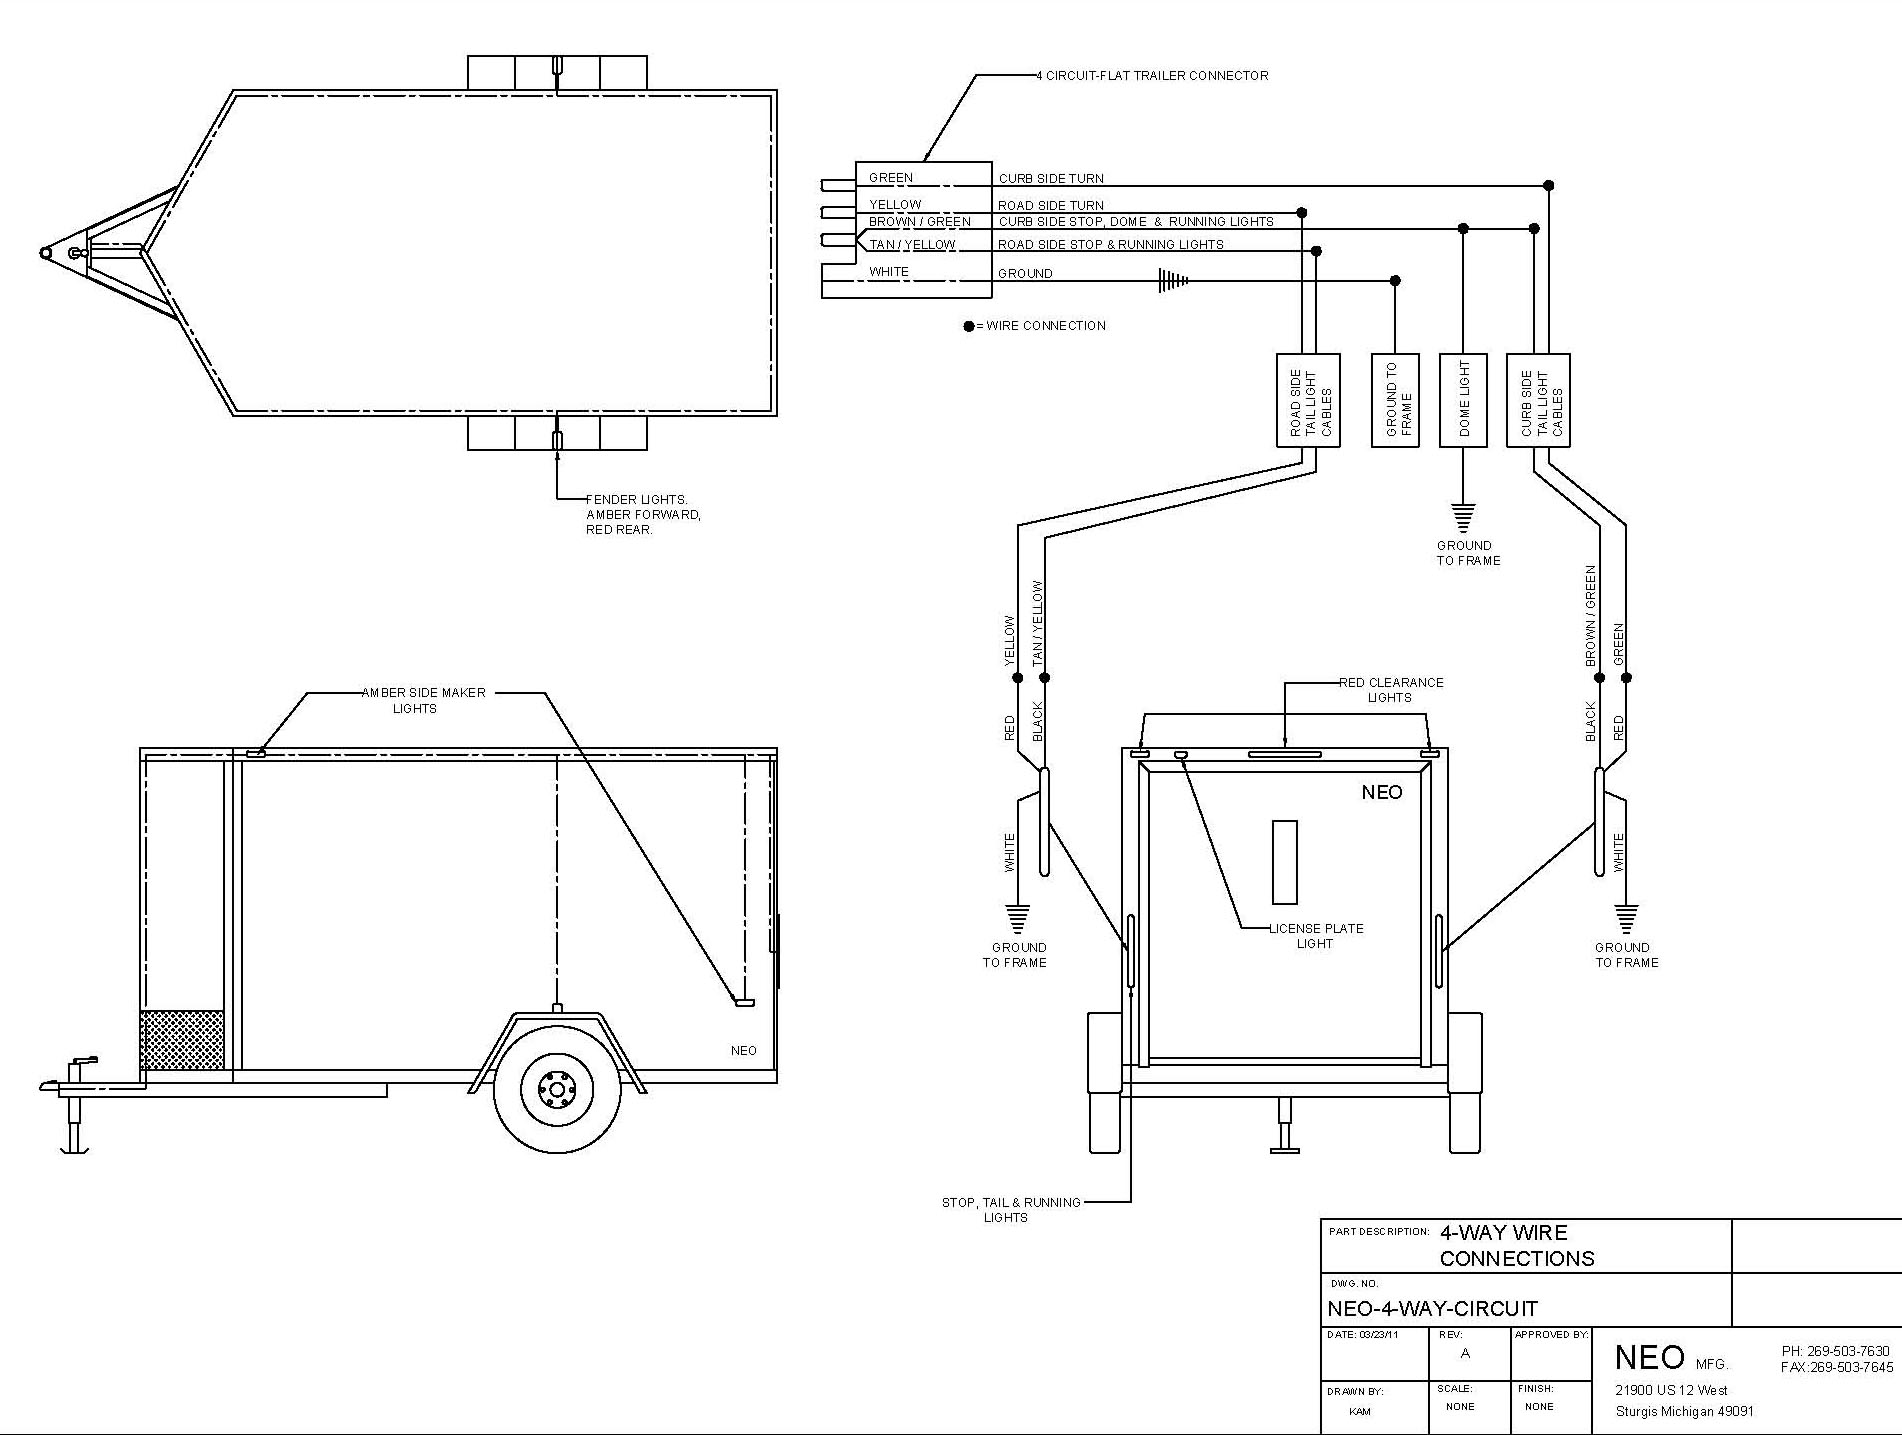 Diagram Pipes Under Sink 646142 besides 4 Pin 5 Wire Trailer Harness likewise How To Install Replace Parking Light Turn Signal Gmc Sierra 99 06 further Trailer Wiring Diagram 4 Flat moreover Alumacraft Wiring Harness. on 7 way trailer wiring adapter